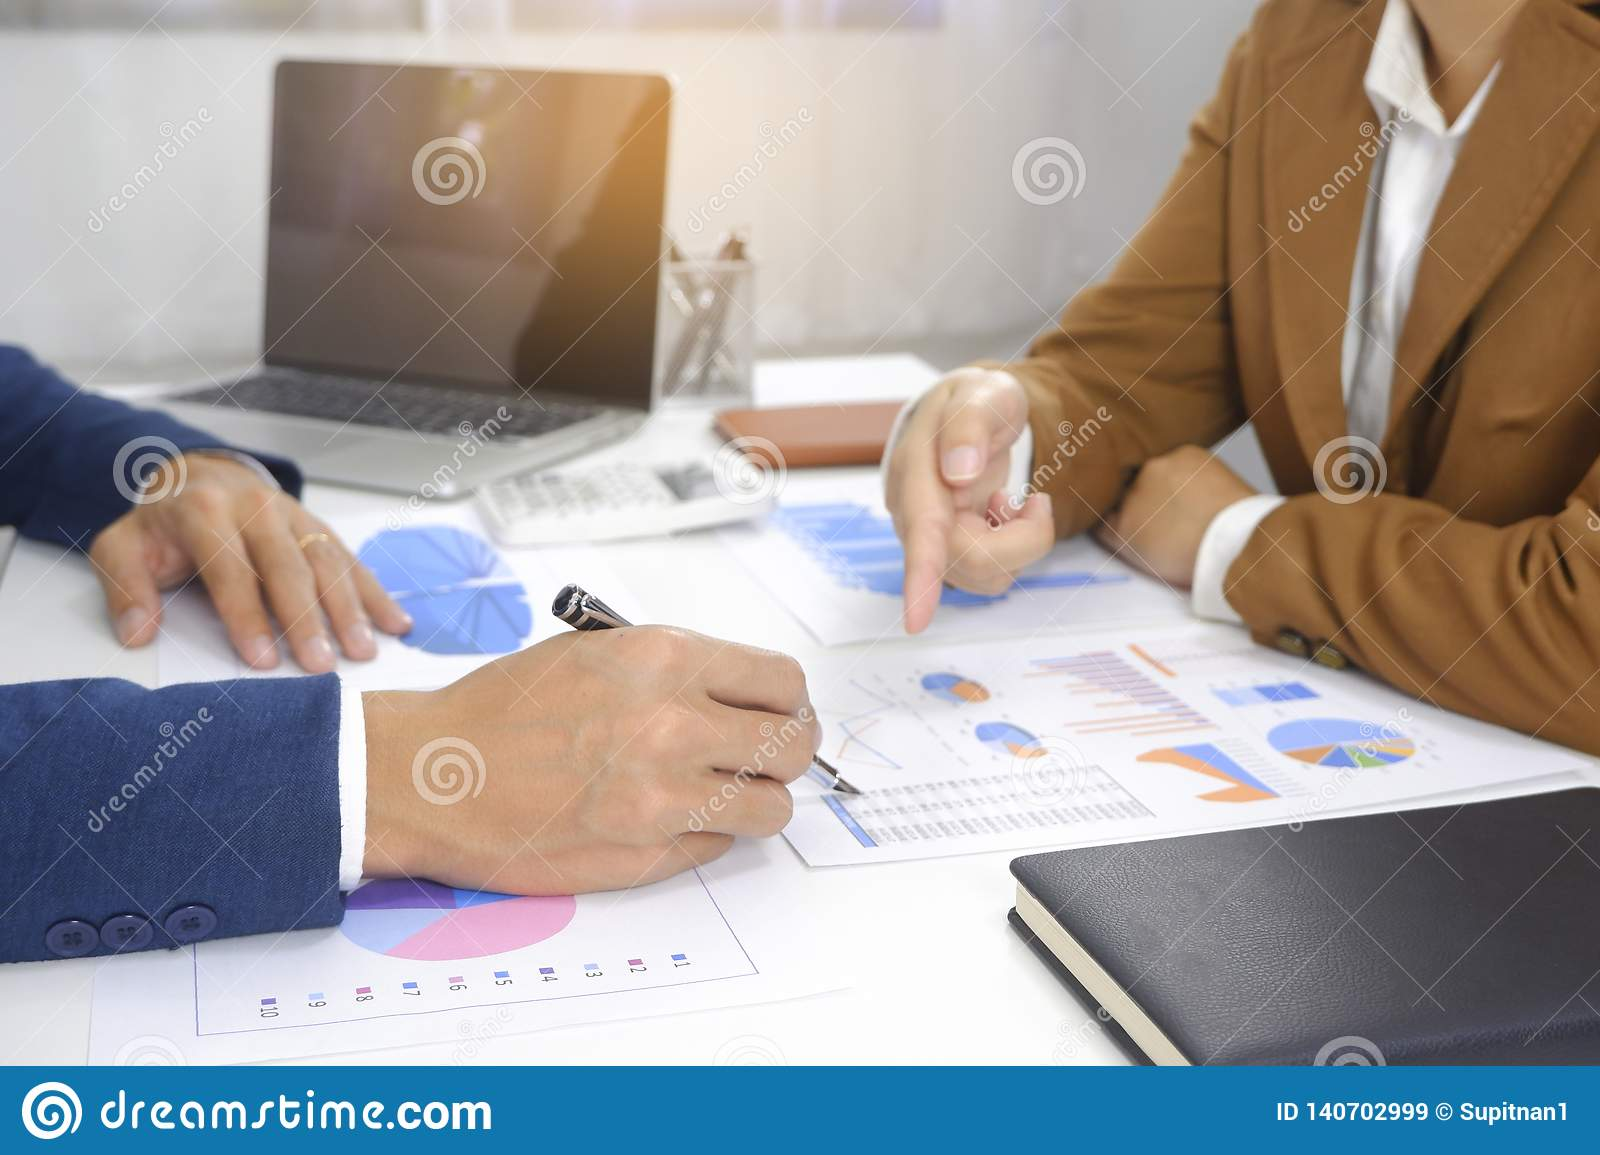 Businesspeople meeting design idea, professional investor working in office for start up new project.